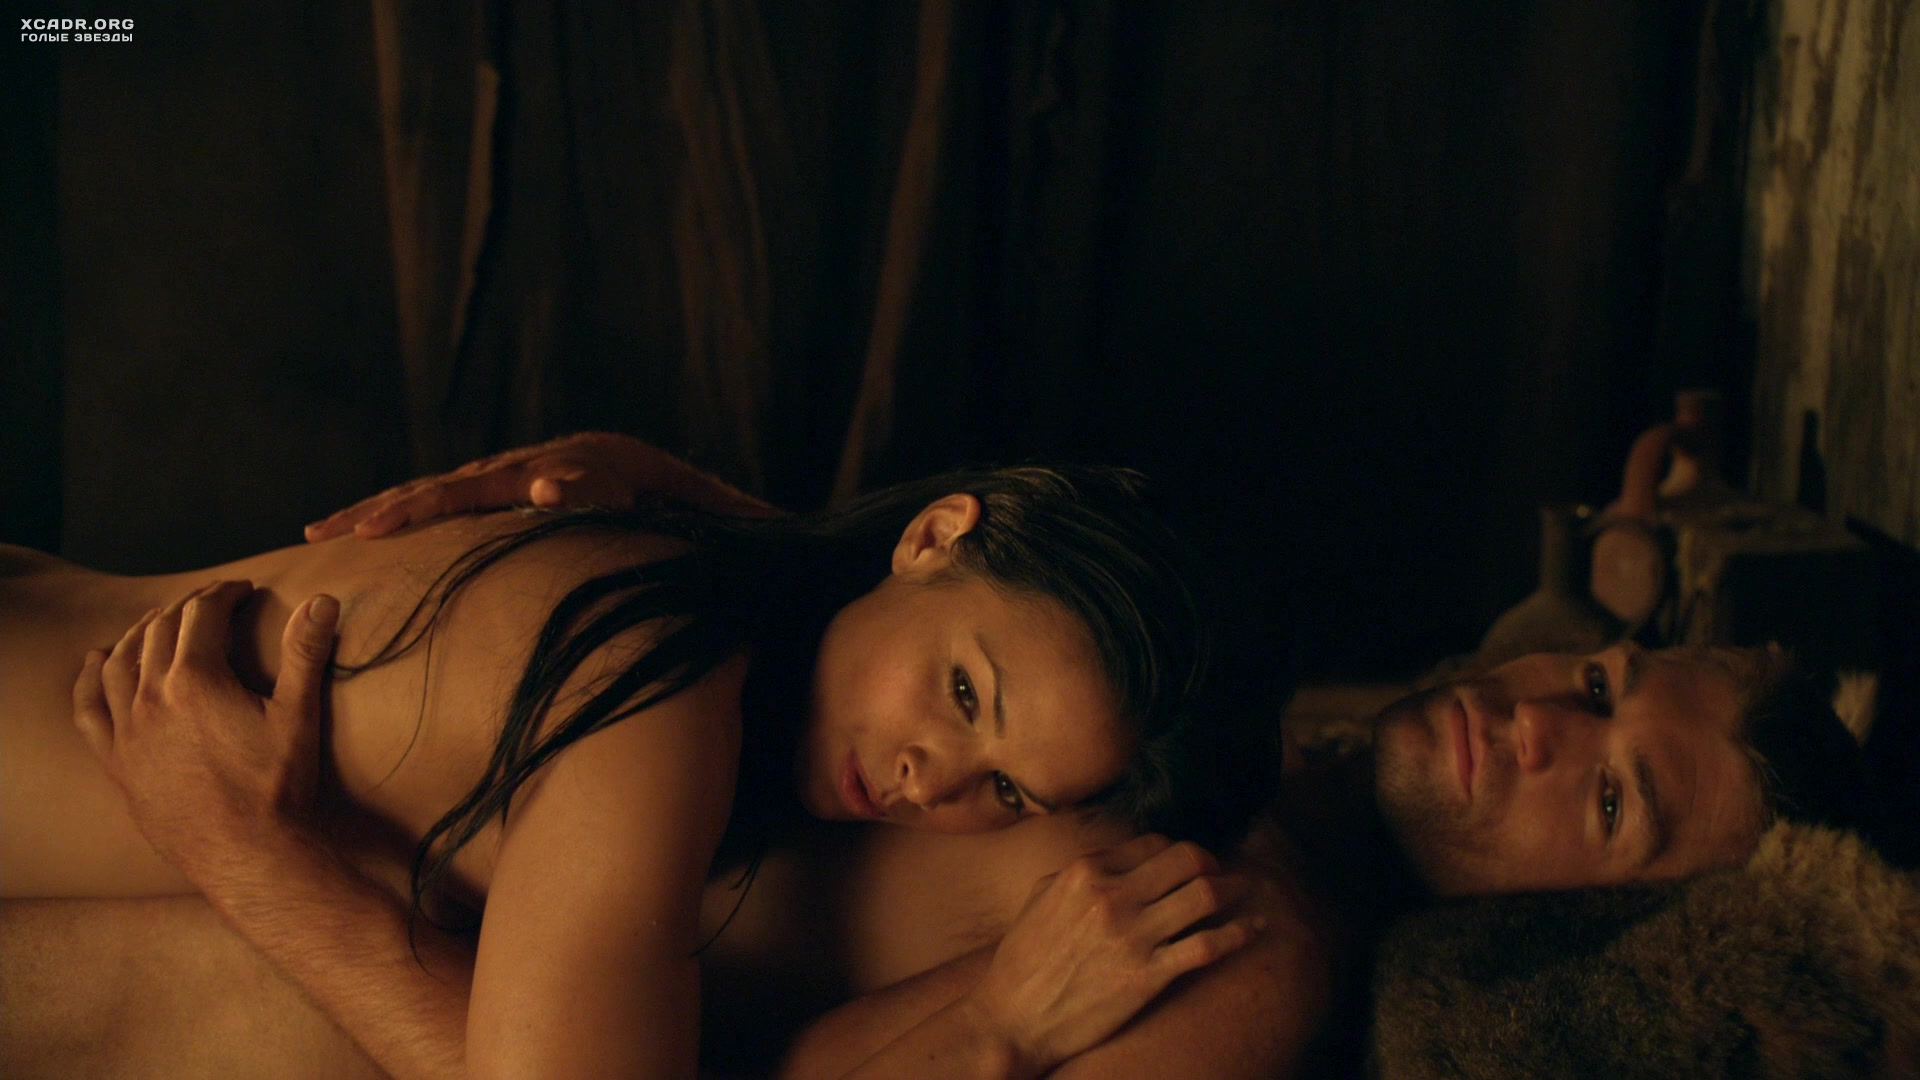 Sex scene from the film